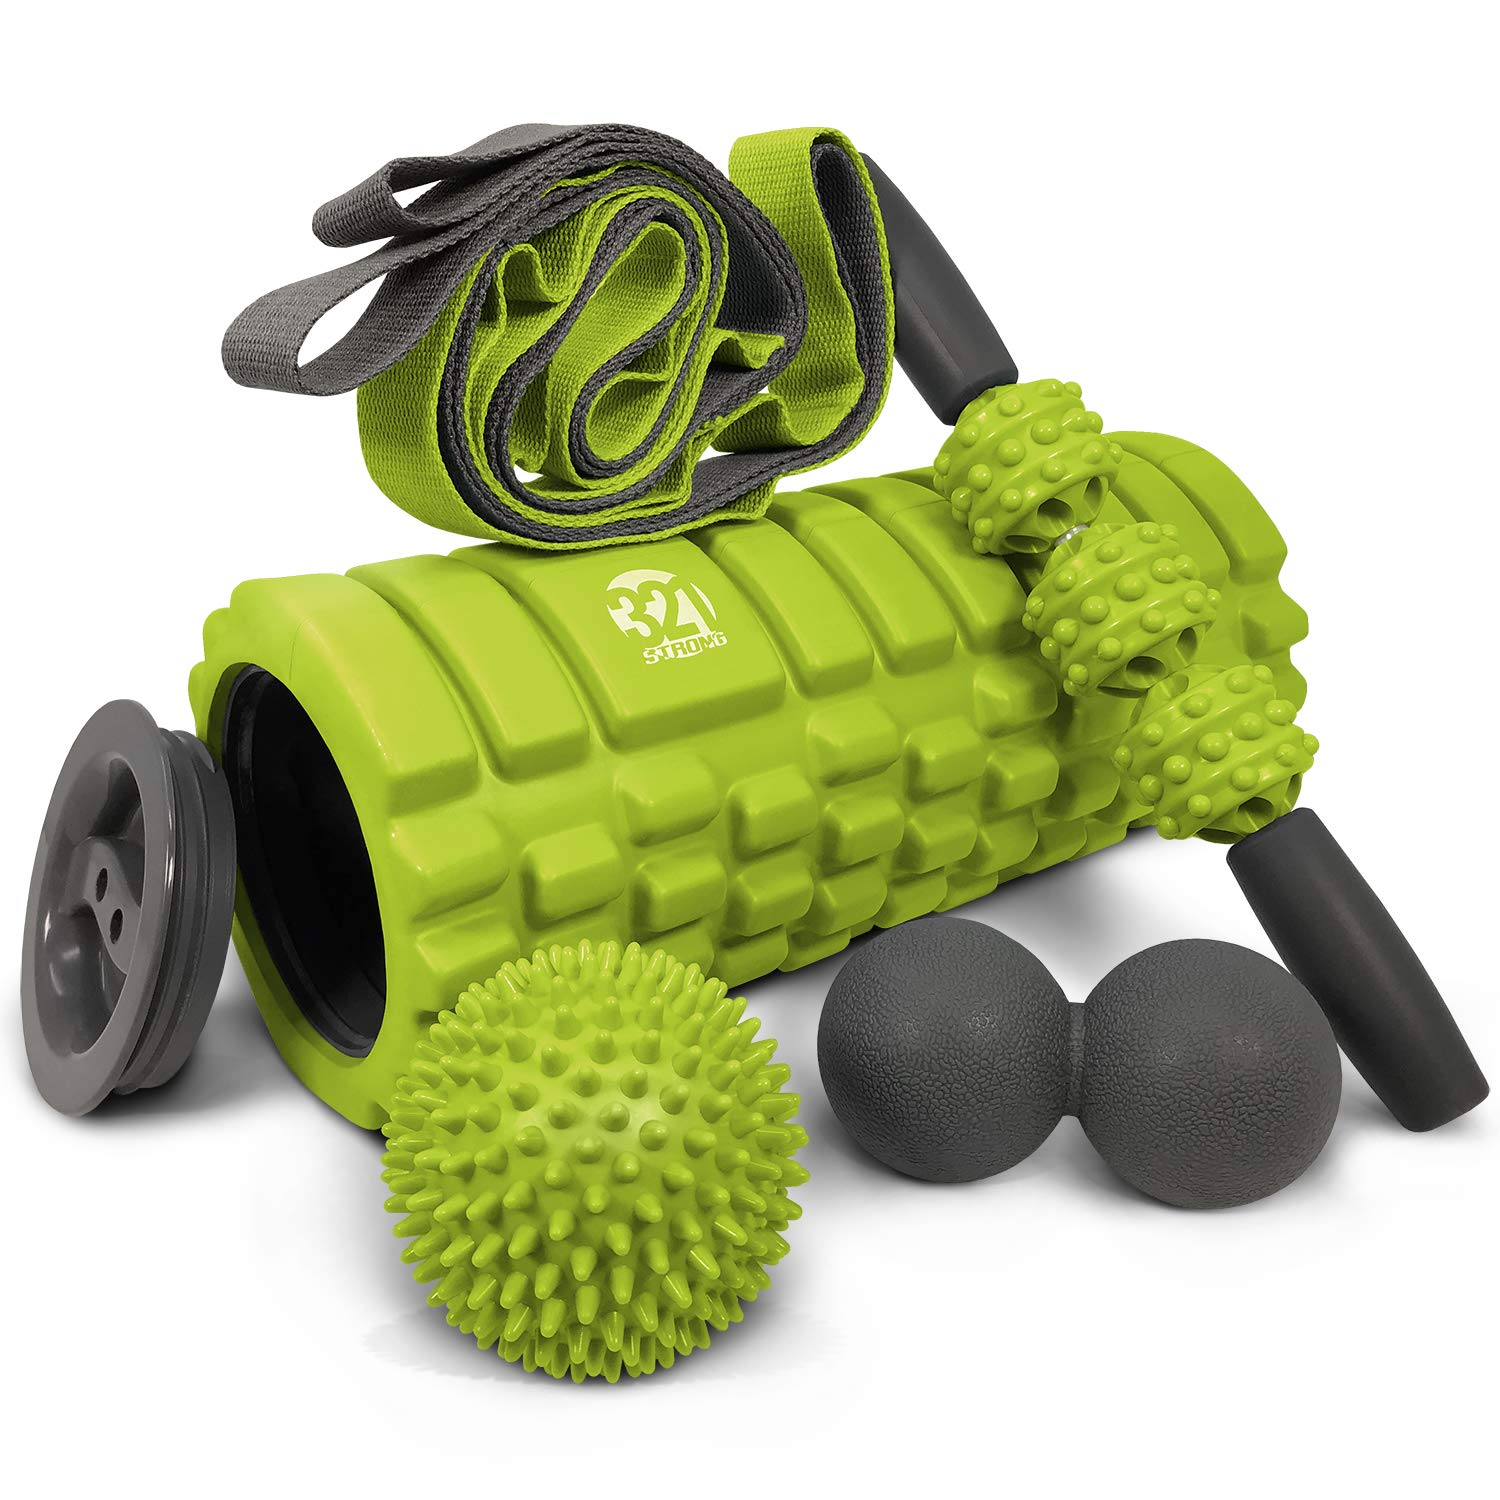 321 STRONG 5 in 1 Foam Roller Set Includes Hollow Core Massage Roller with End Caps, Muscle Roller Stick, Stretching…